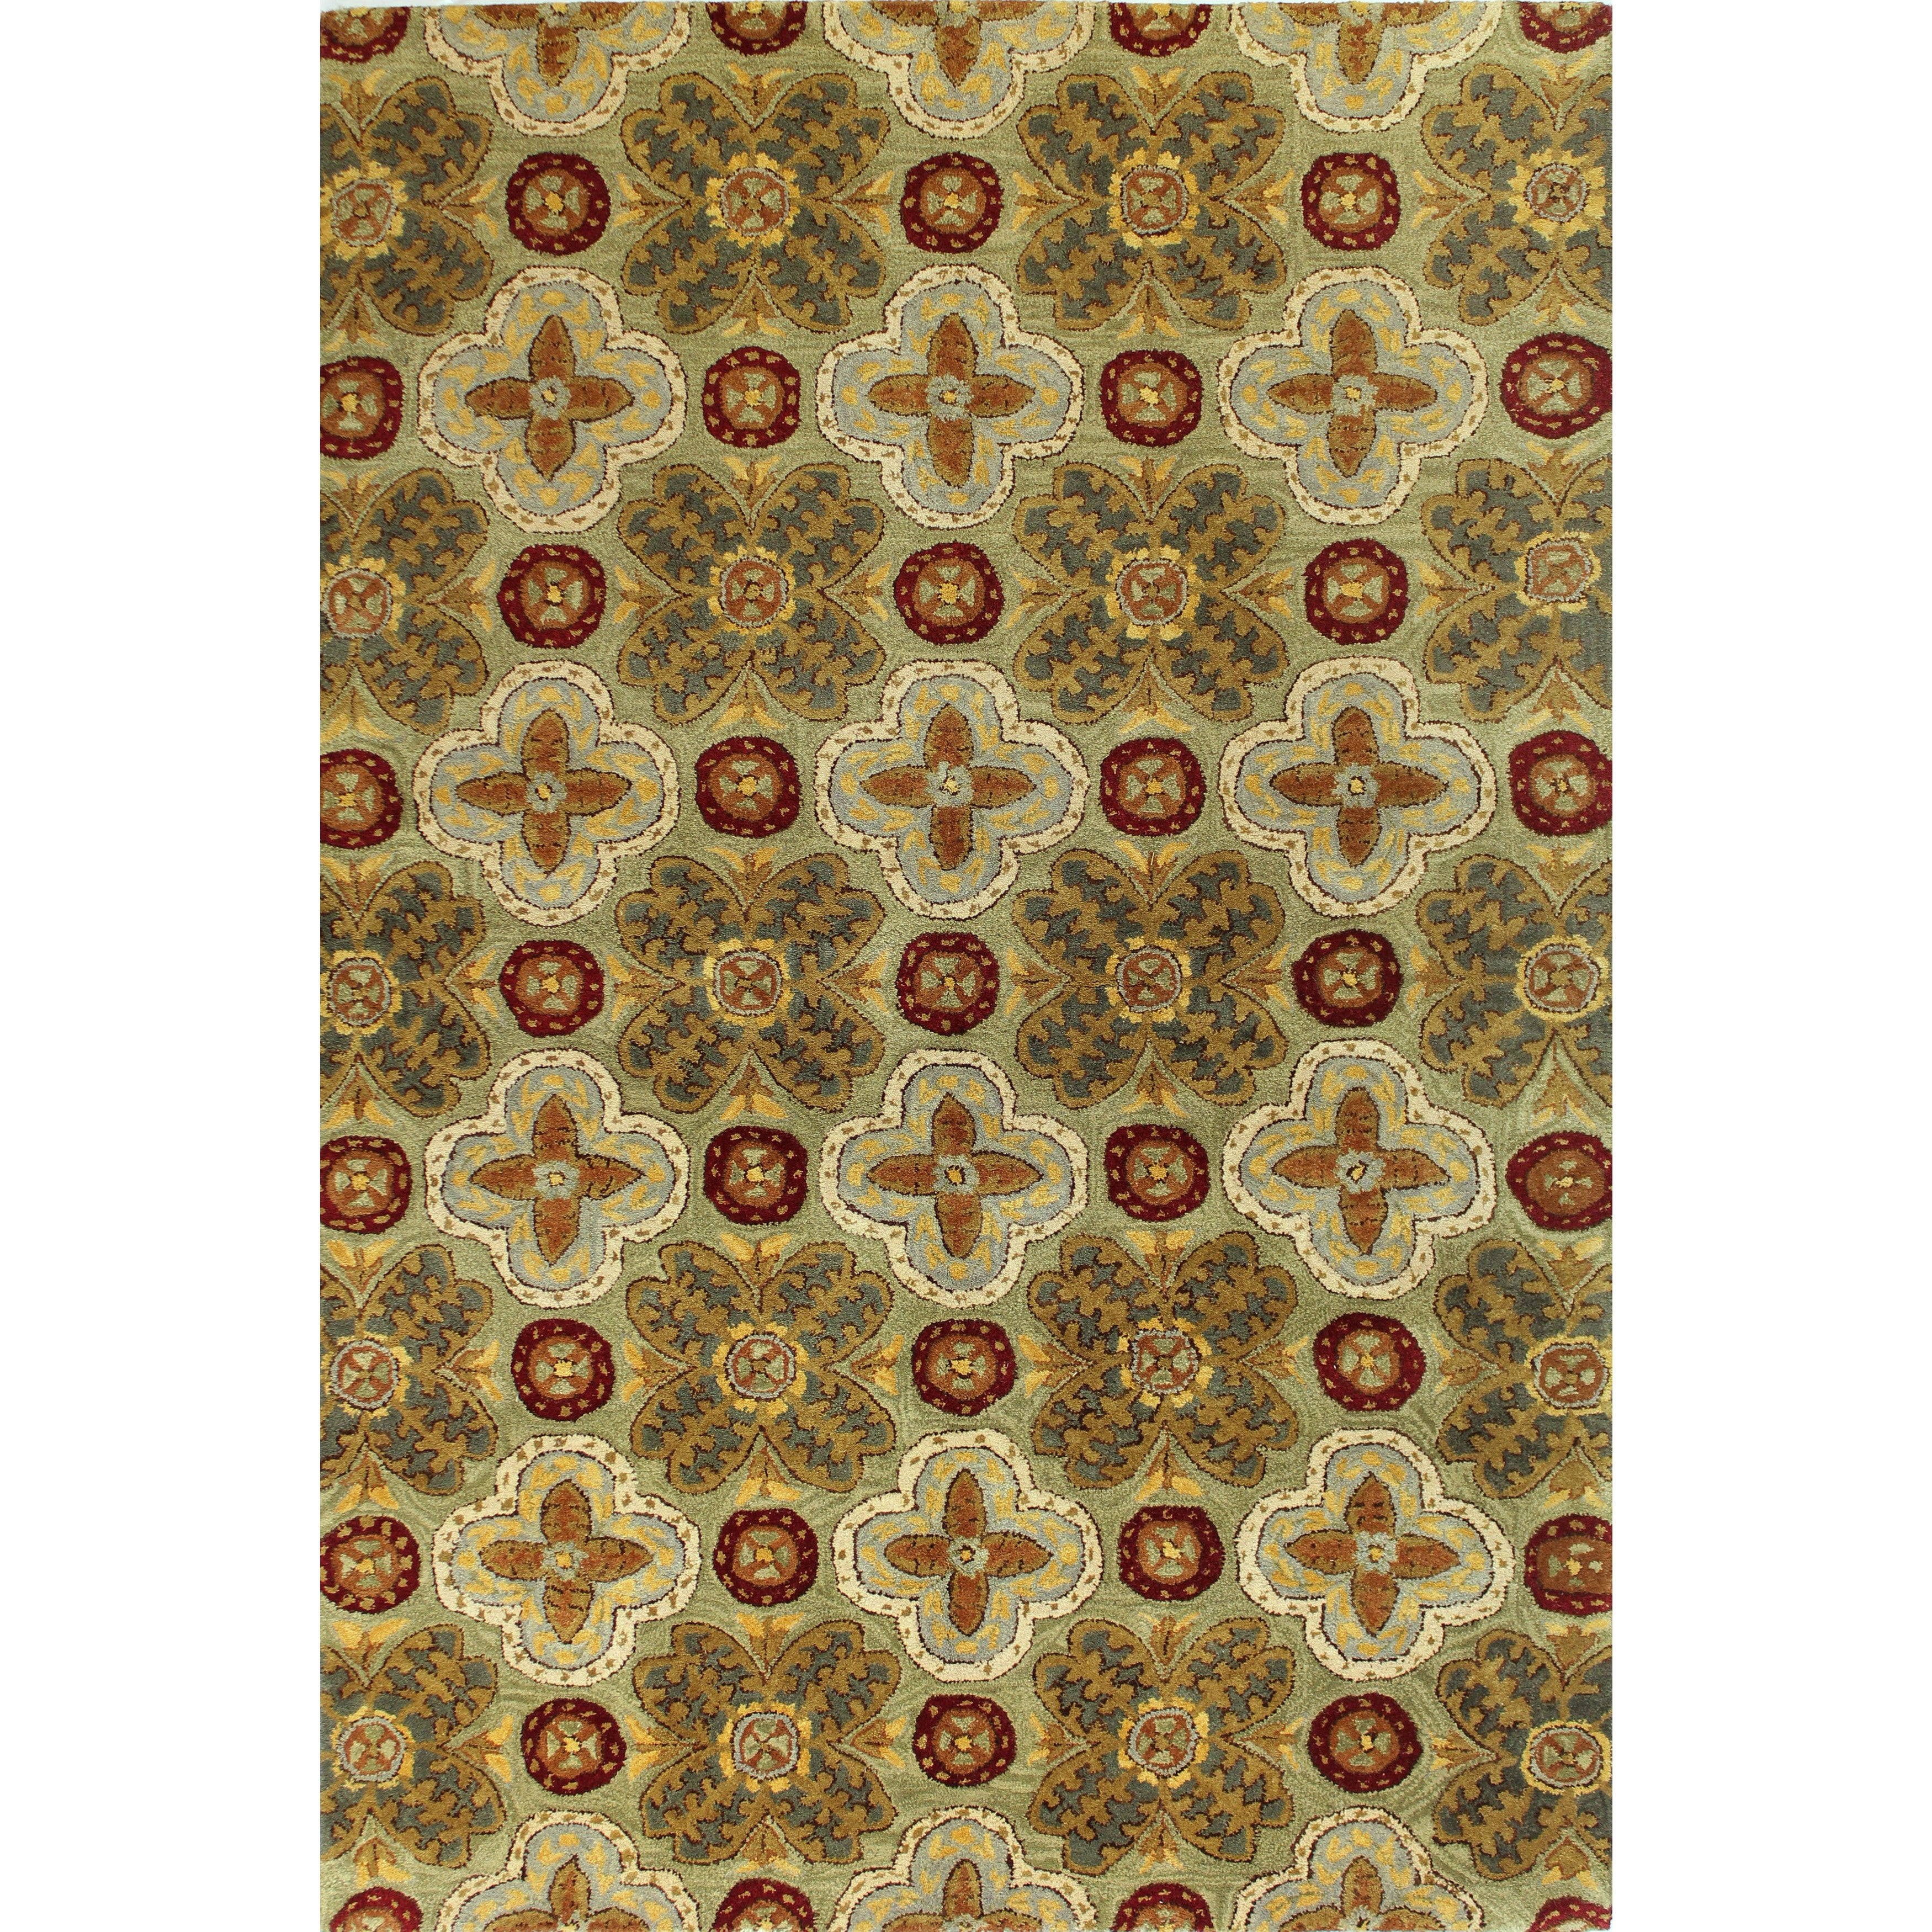 wilshire collection rugs  rugs  compare prices at nextag - bashian caroline tufted wool area rug (' x ')